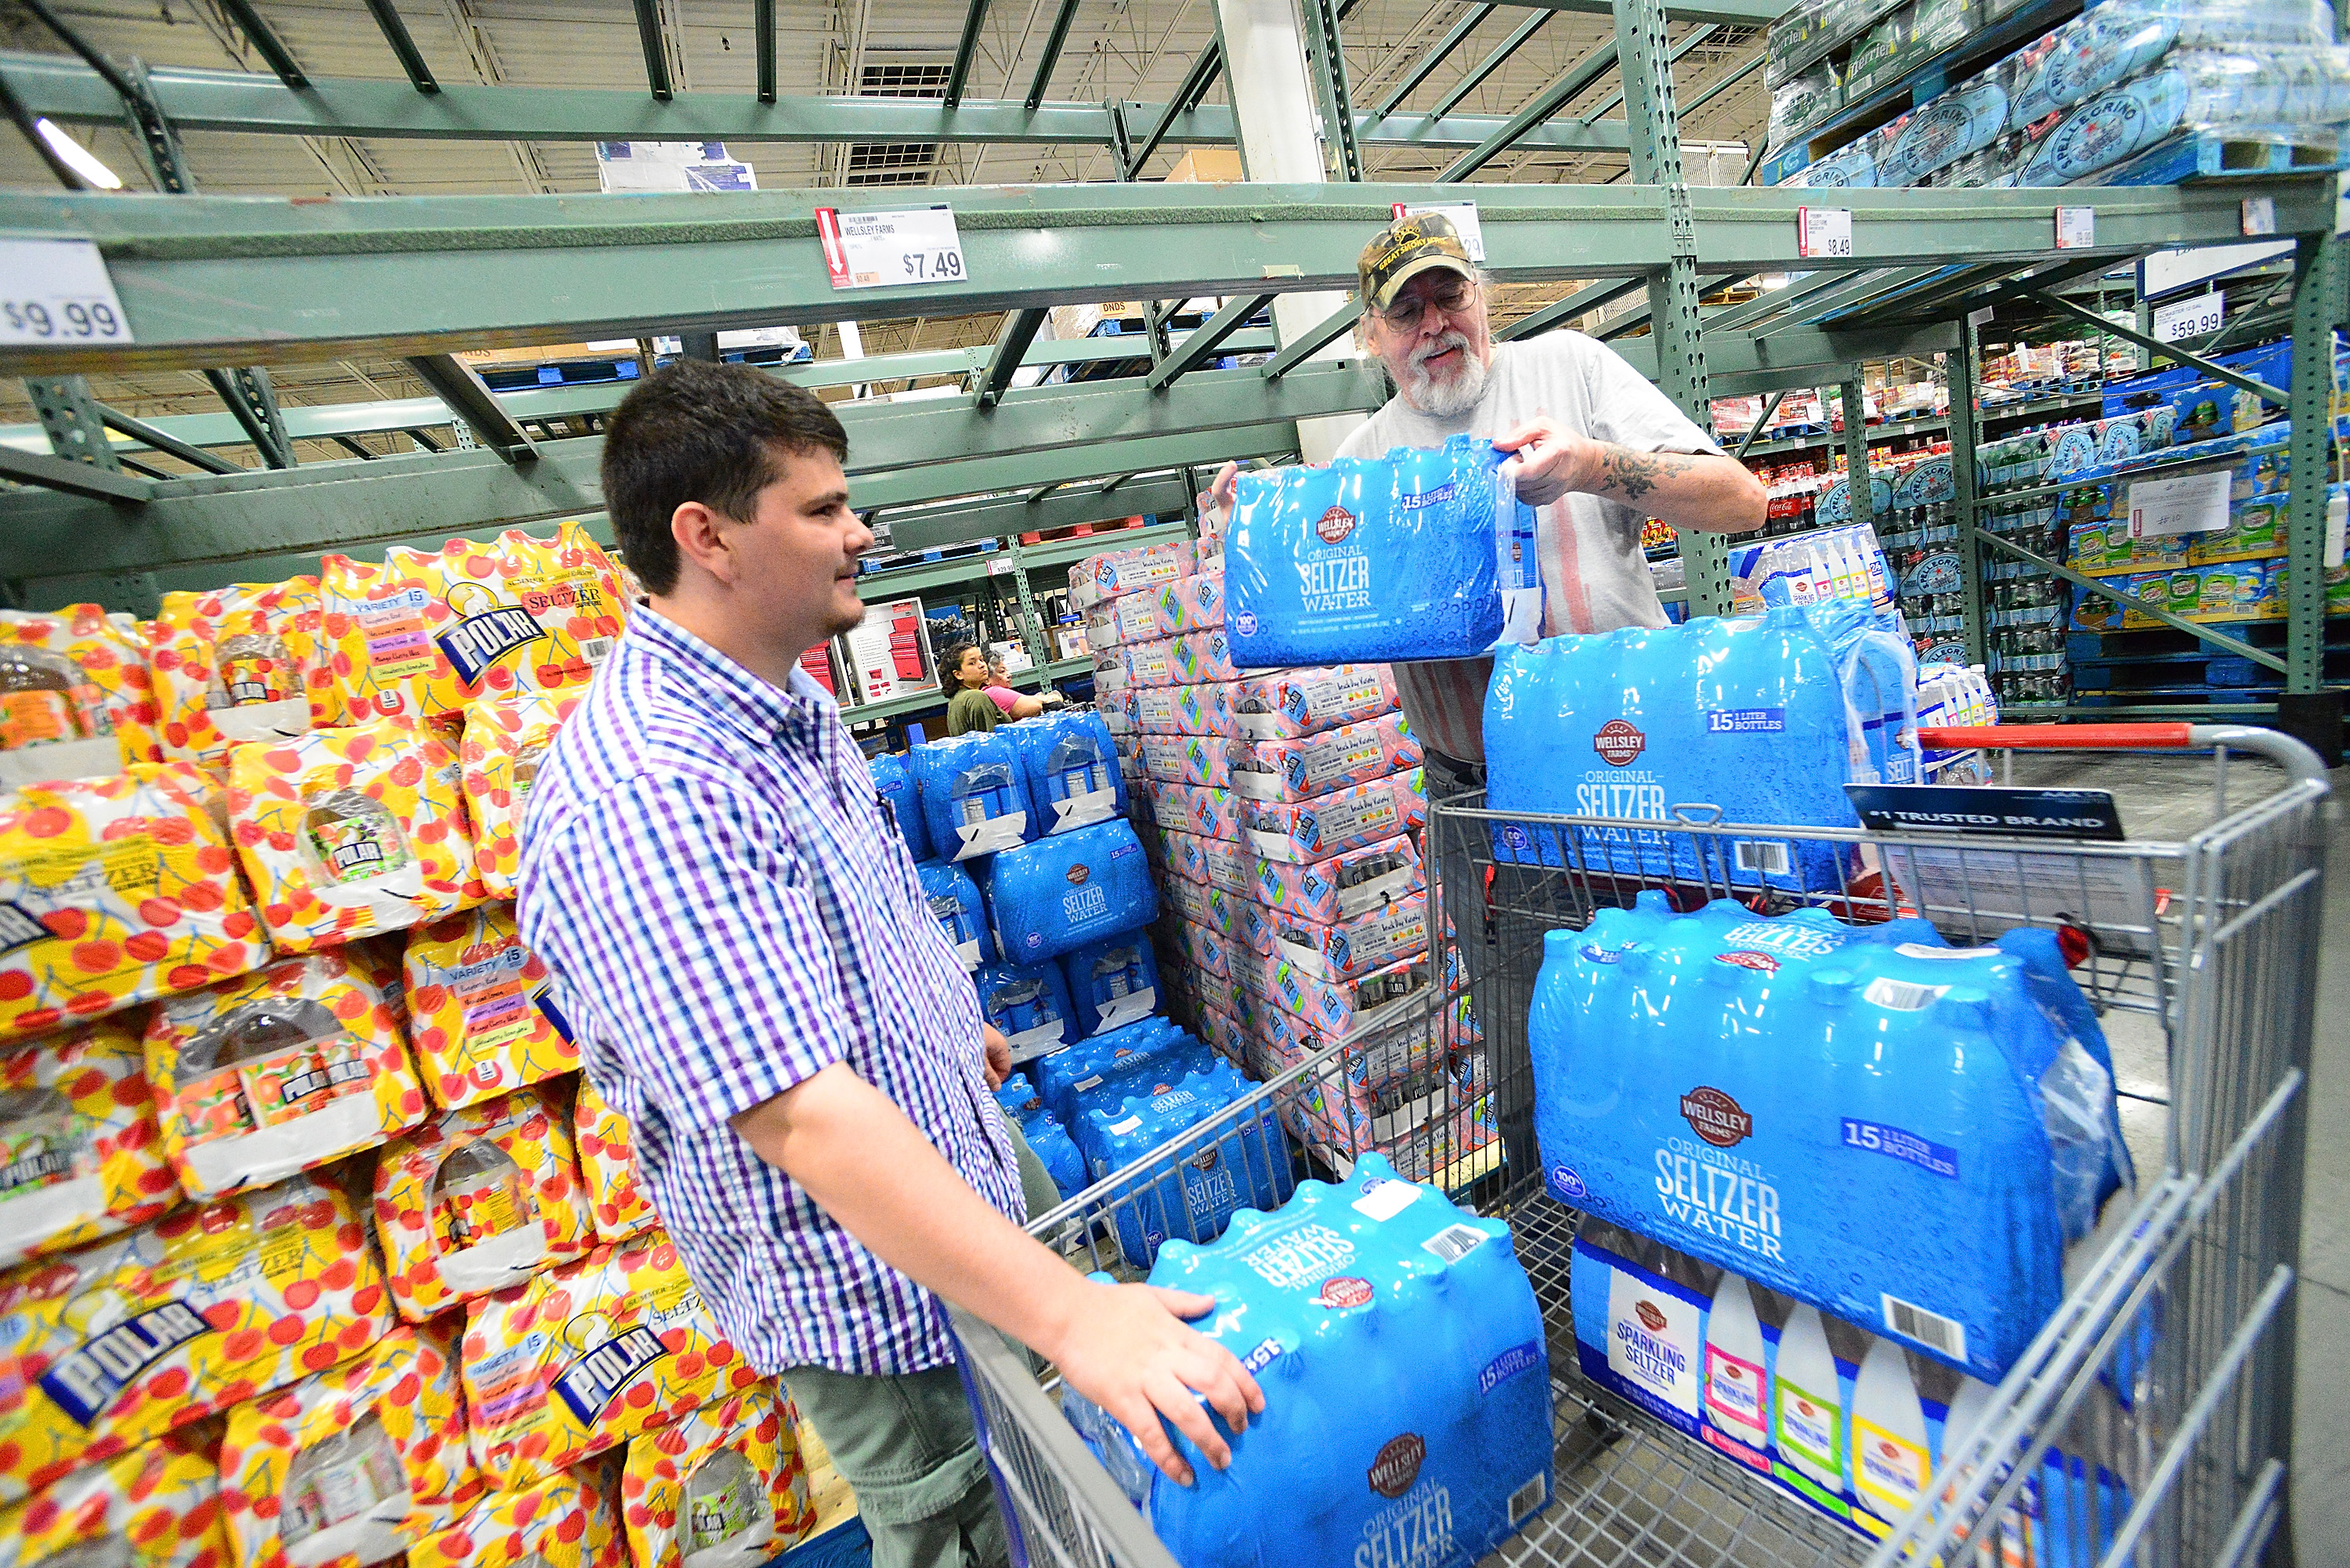 Florida residents buy supplies in preparation for Hurricane Dorian on August 29, 2019 in Orlando, Florida.